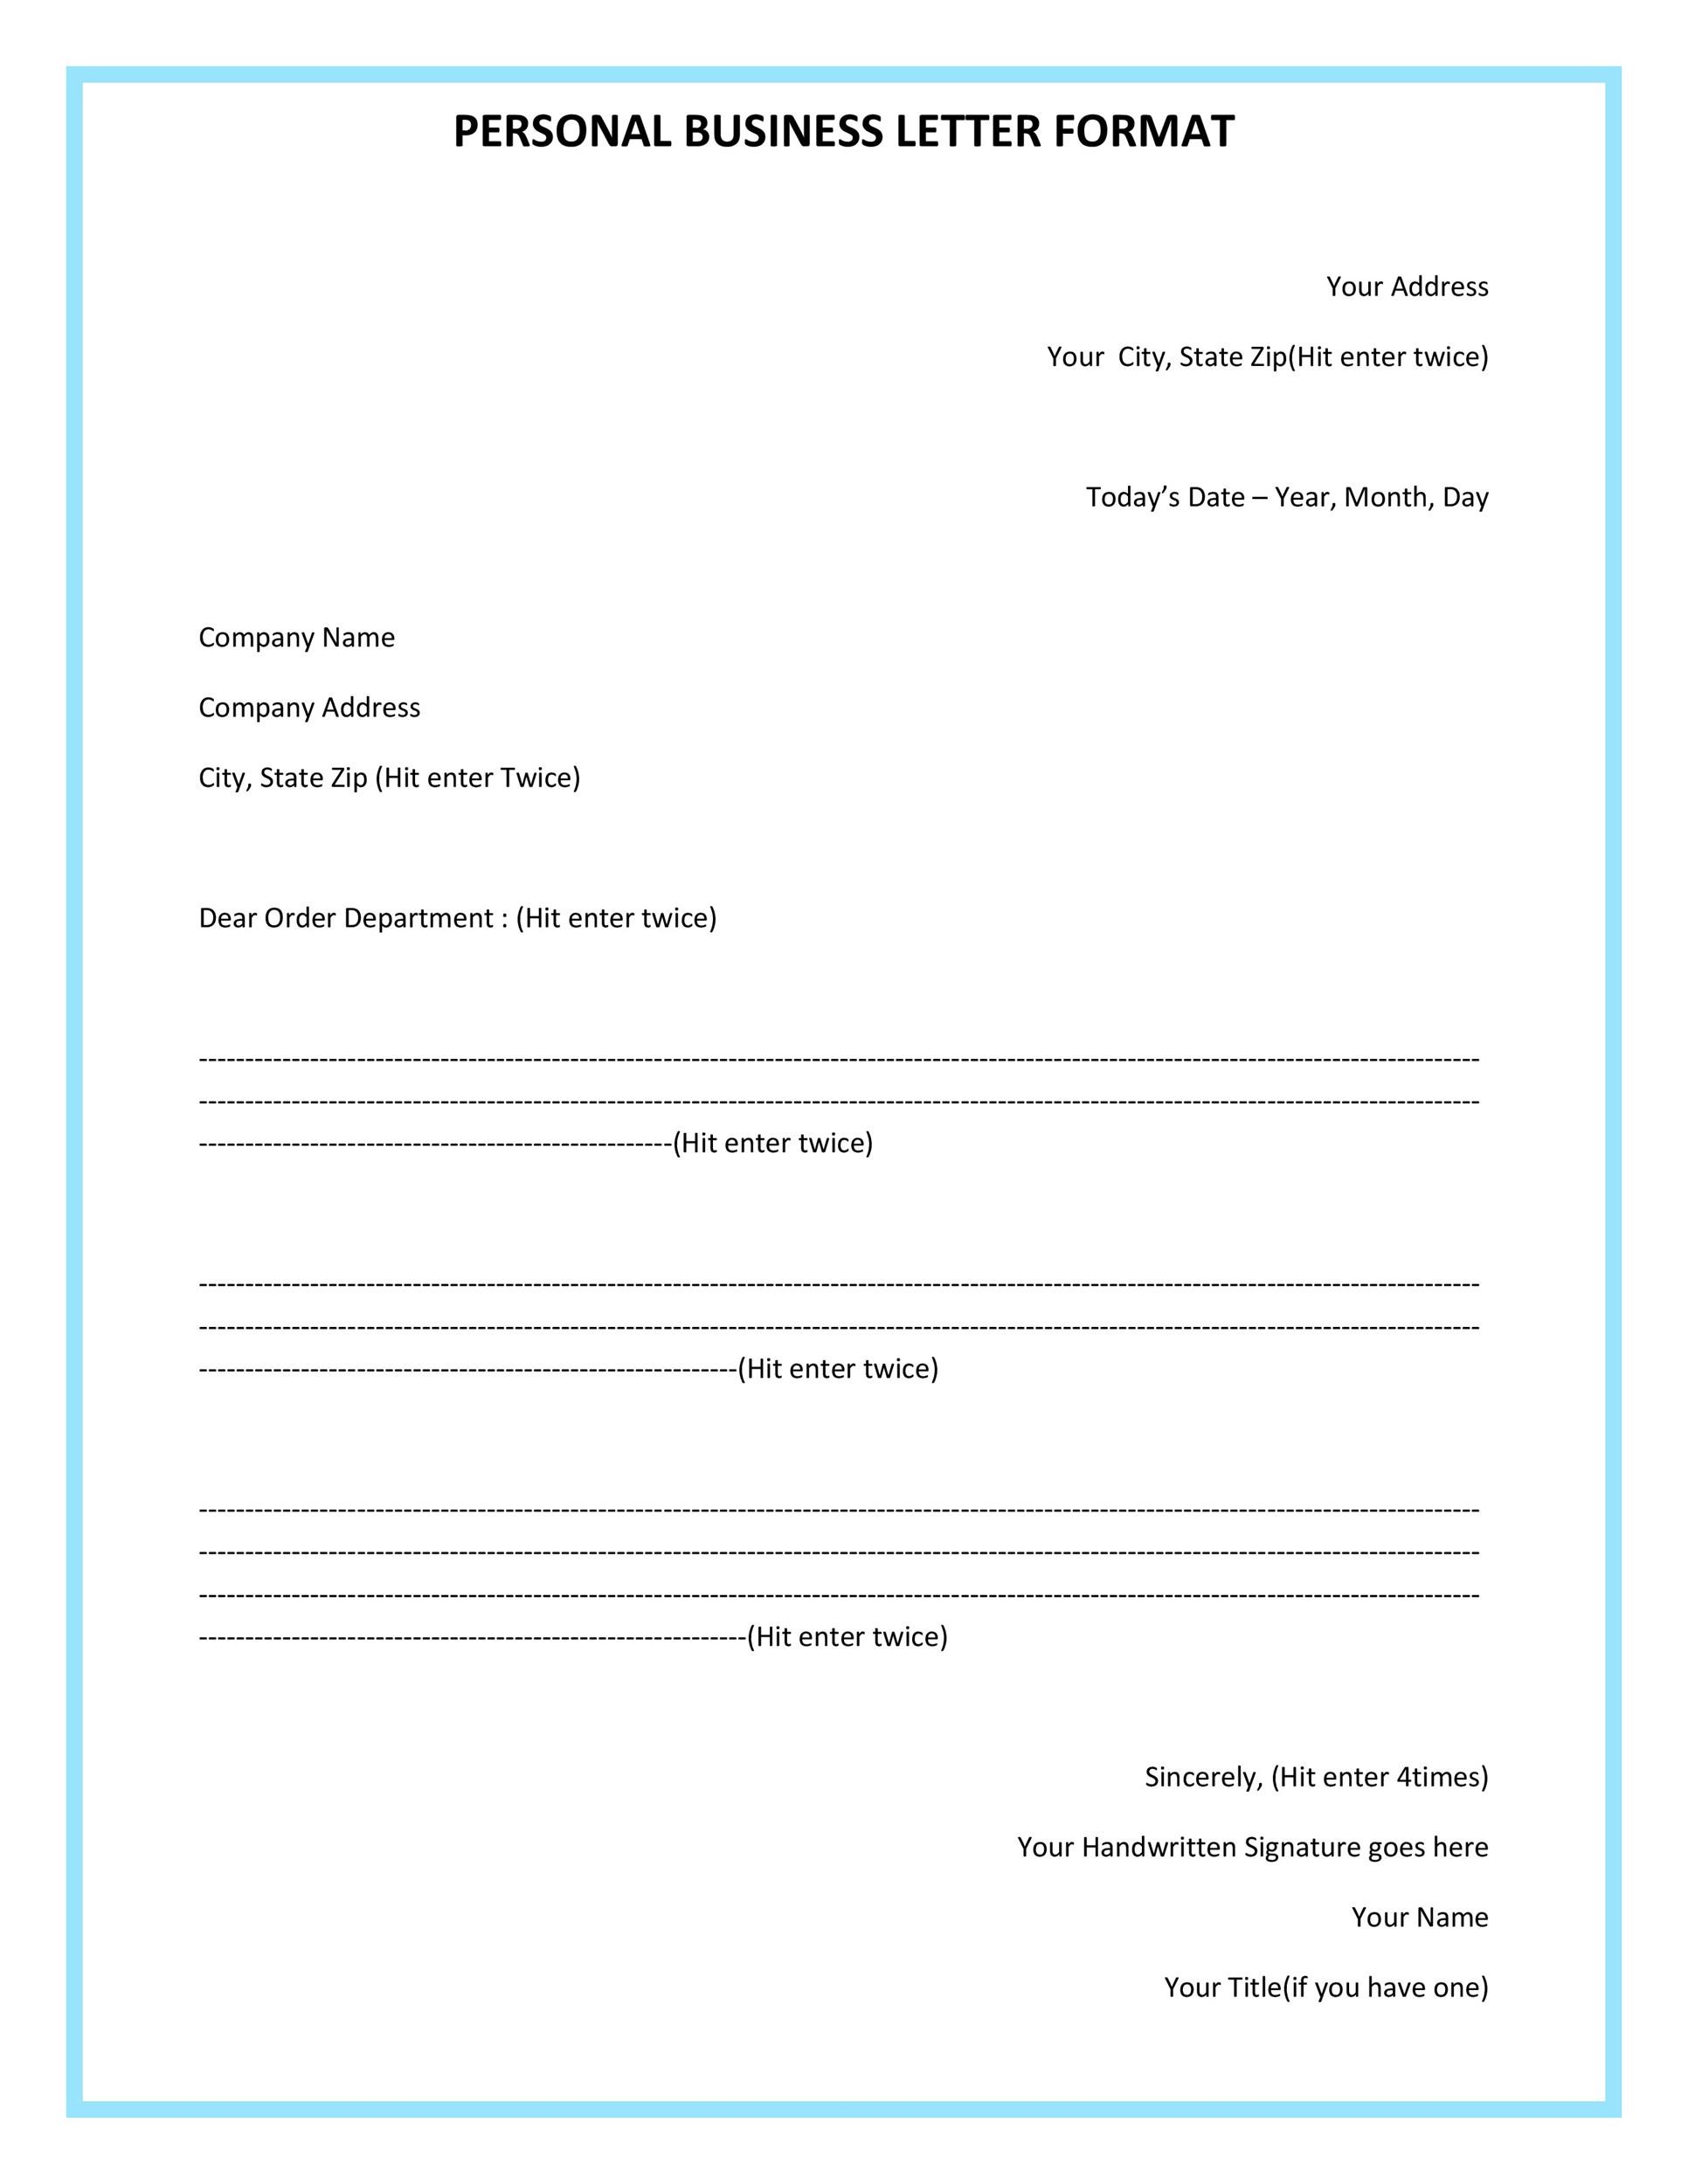 Formal Business Letter Format Templates Examples Template Lab